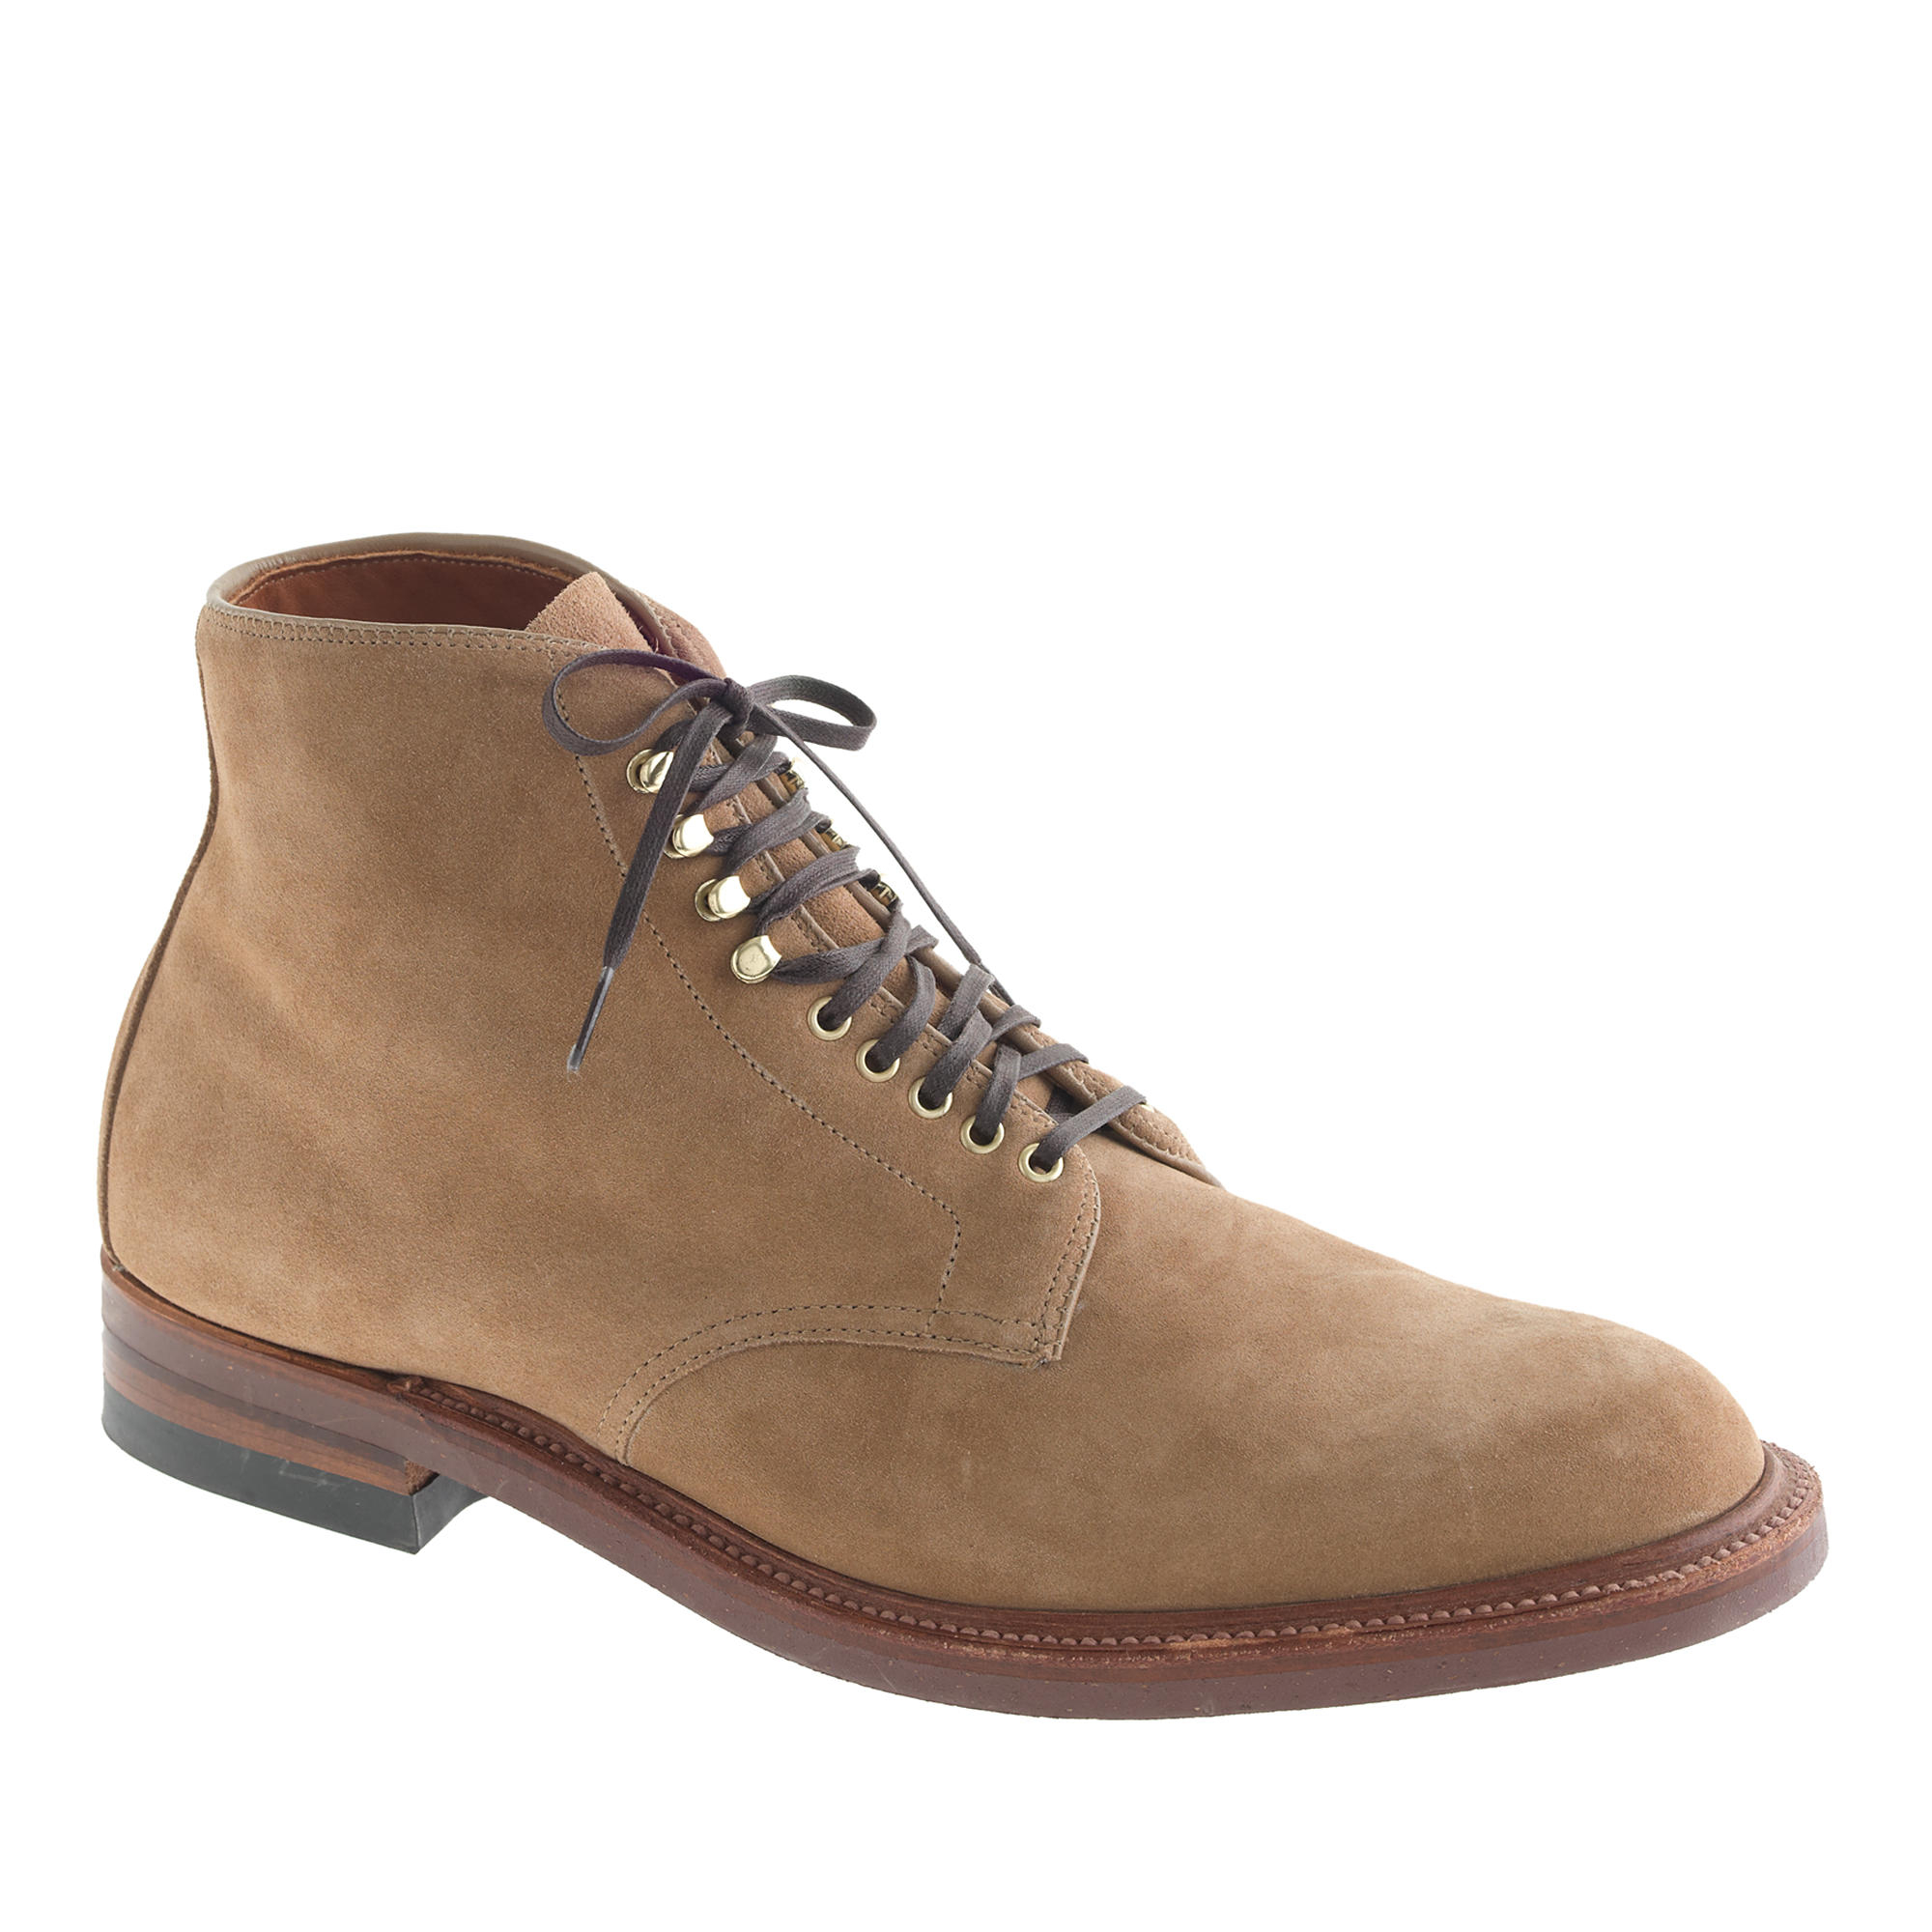 J Crew Boots In Camel Suede In Natural For Men Lyst